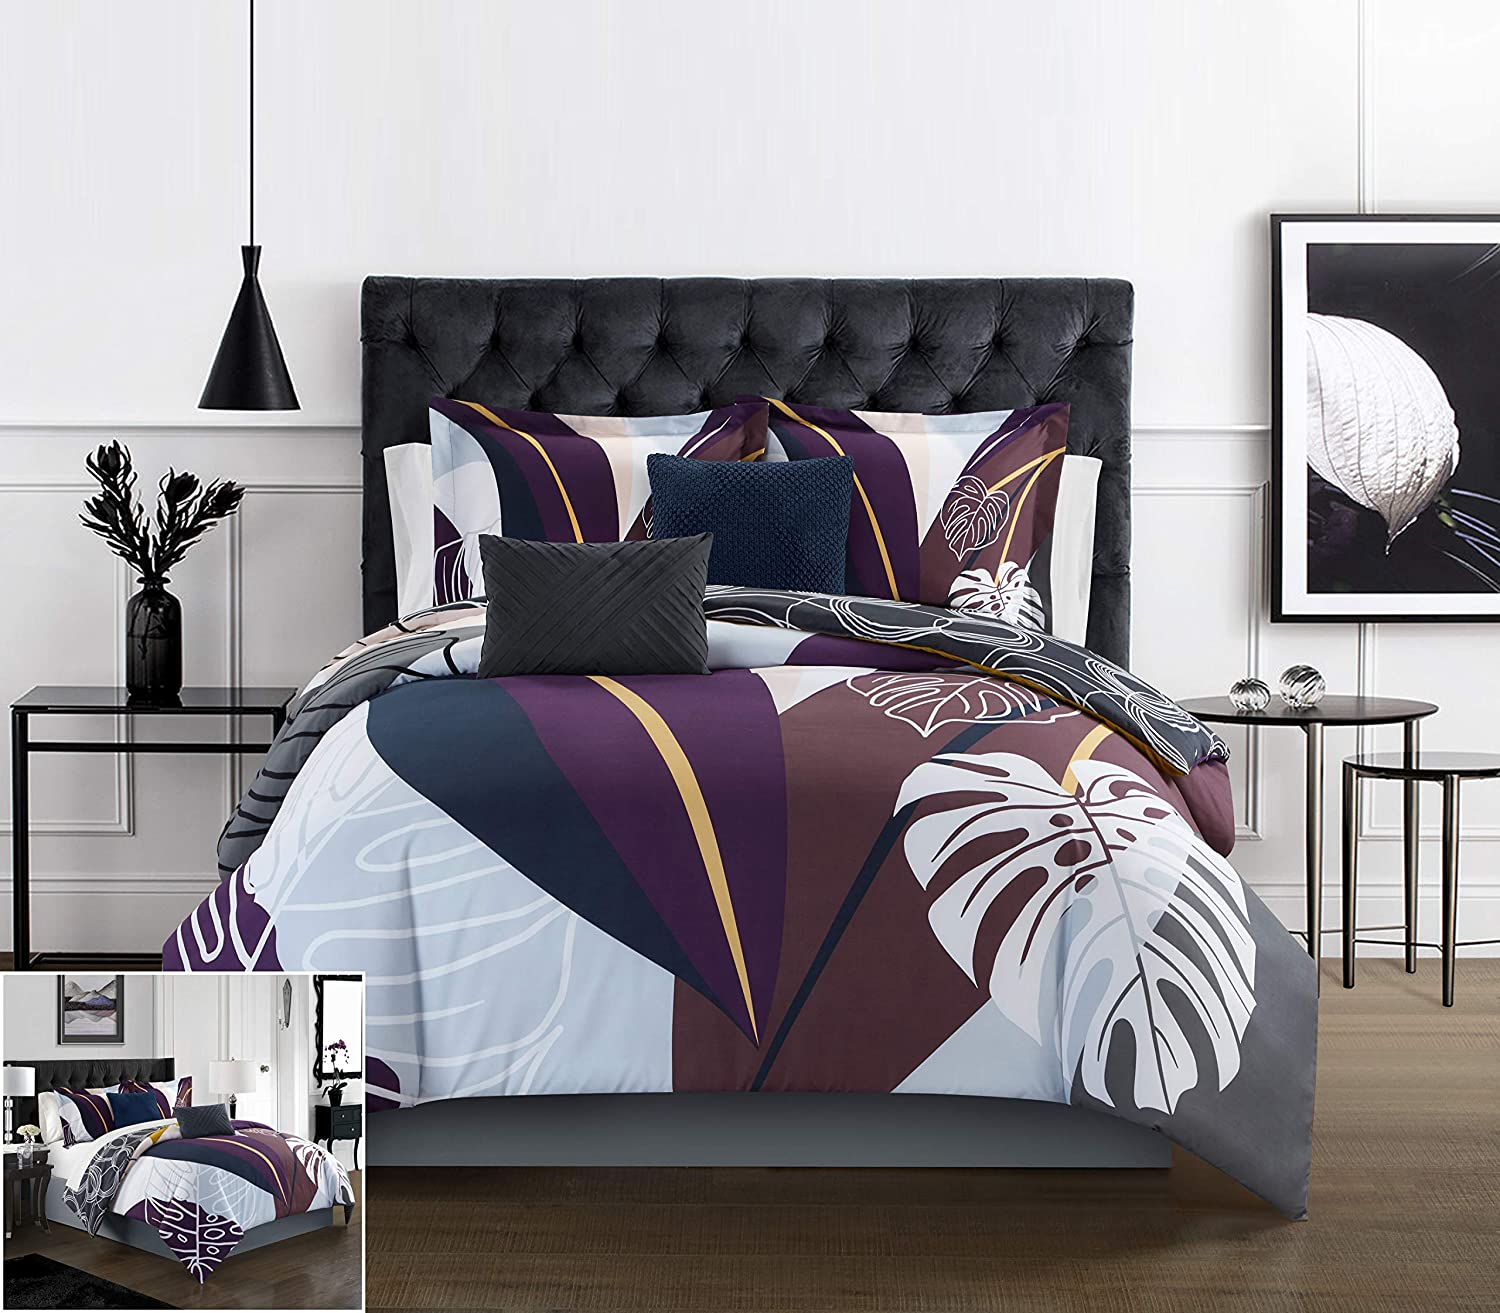 Chic Home Anaea 4 Piece Comforter Set Large Scale Abstract Floral Pattern Print Bedding Decorative Pillows Sham Included Twin Multi Color Home Kitchen